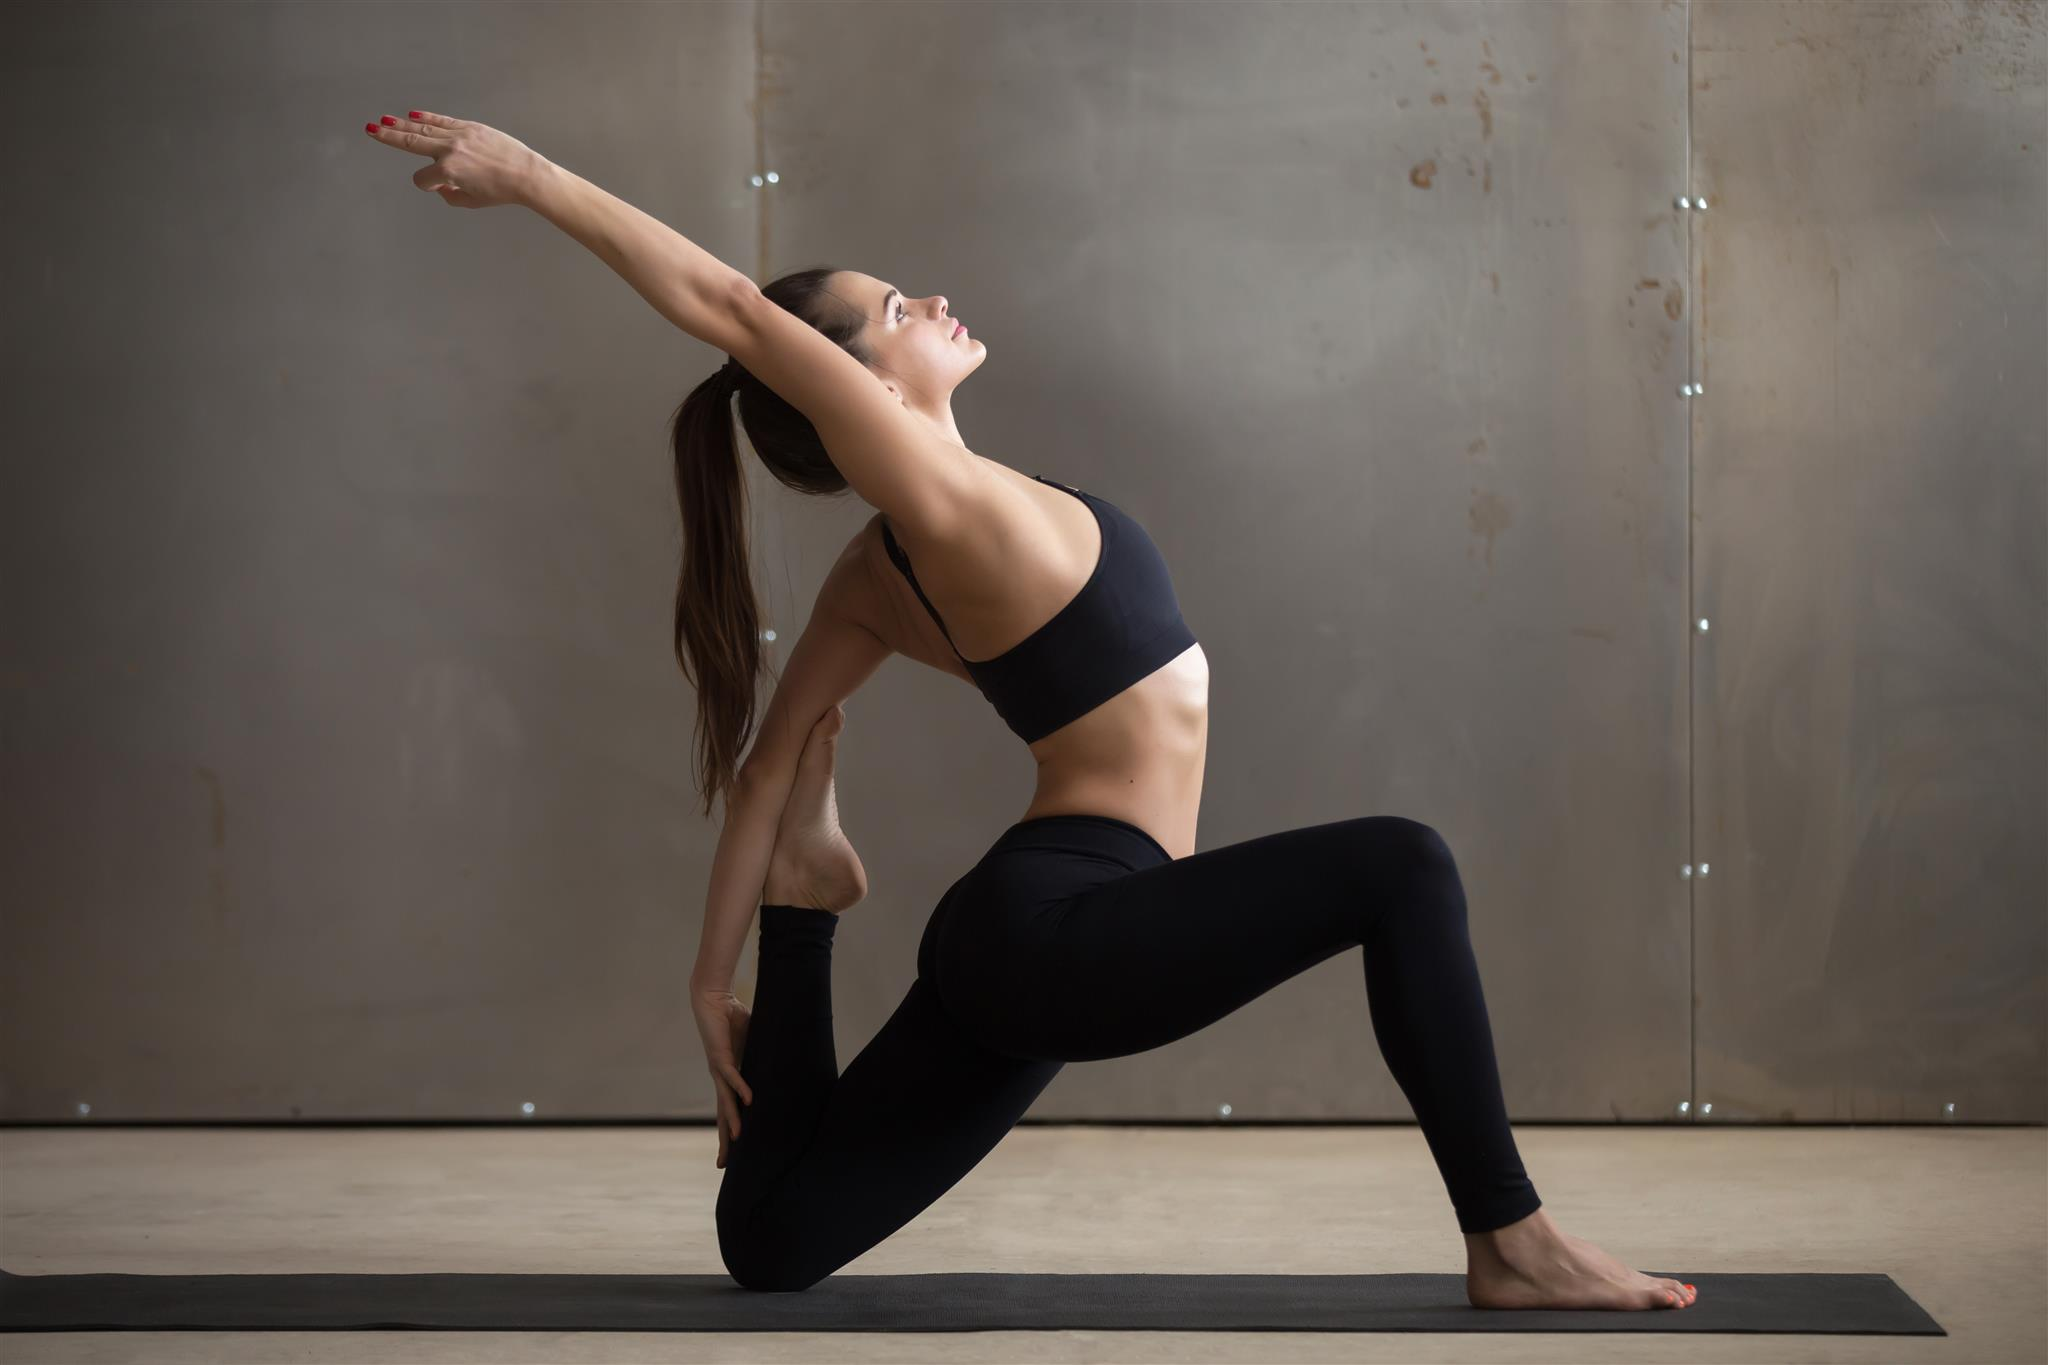 Yoga Poses to Try with Your Valentine - Kristin McGee